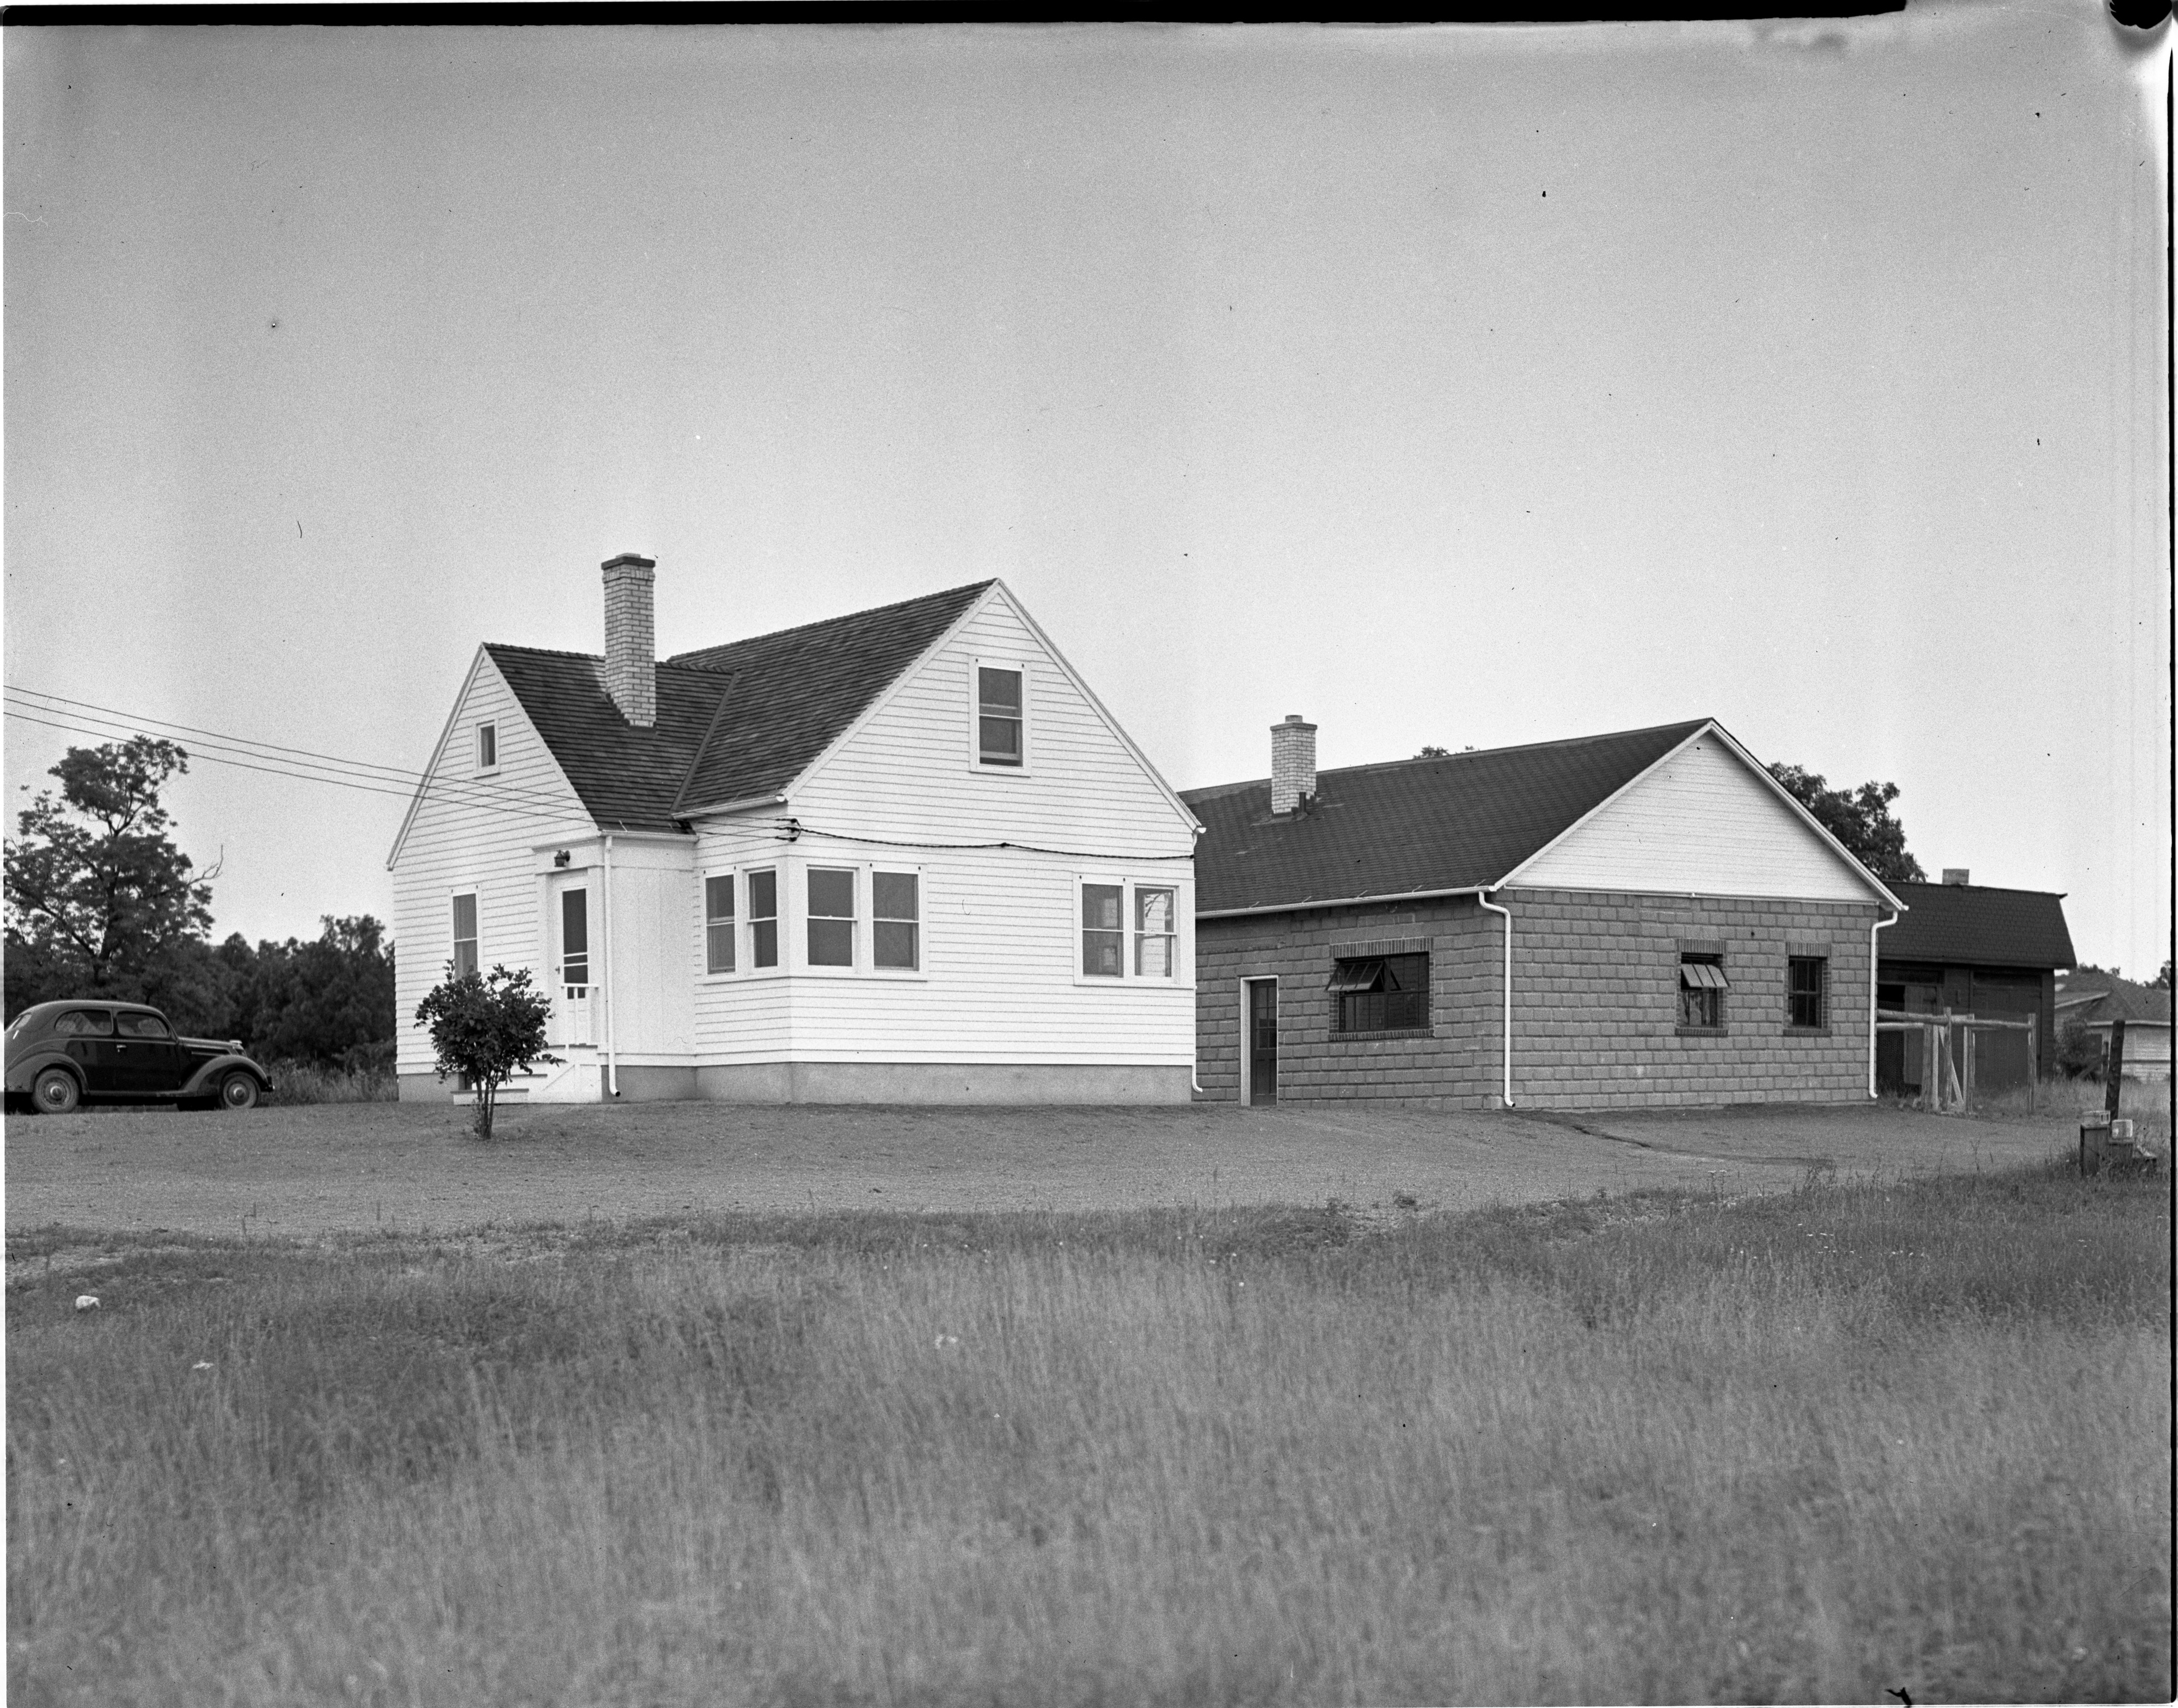 Ann Arbor Humane Society Completes New Building, July 1937 image